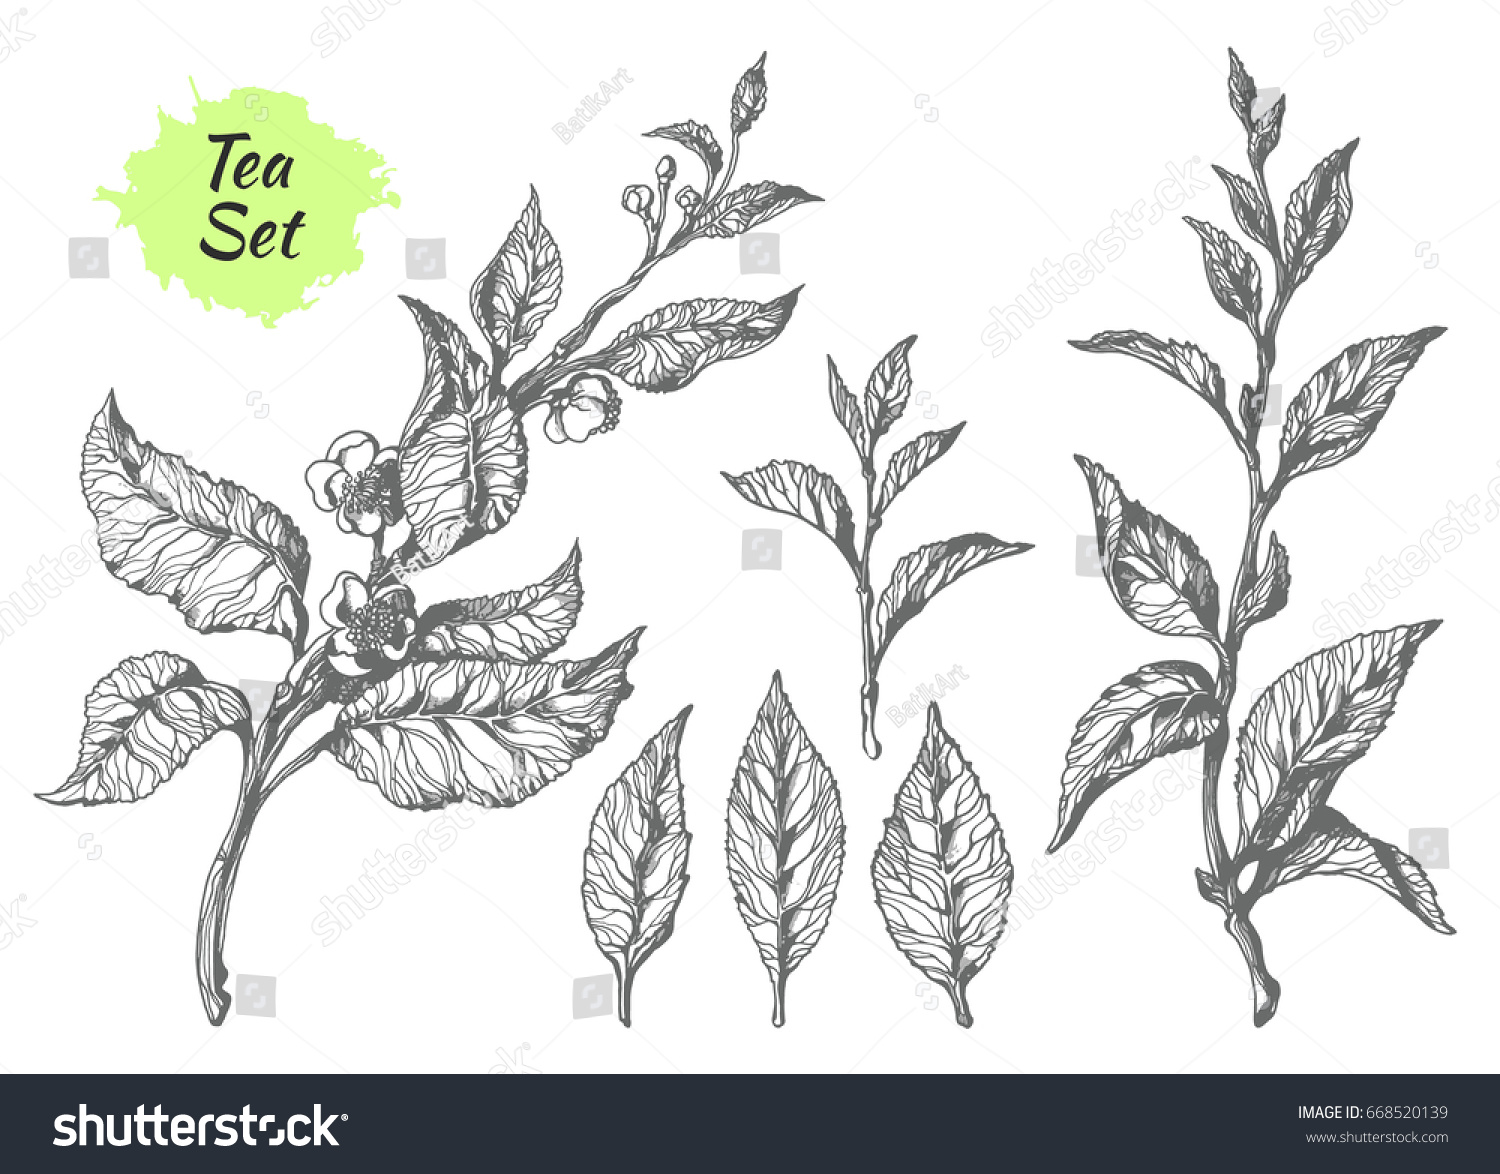 Set Of Tea Bush Branches With Leaves And Flowers Botanical Drawing Sketch Hatching